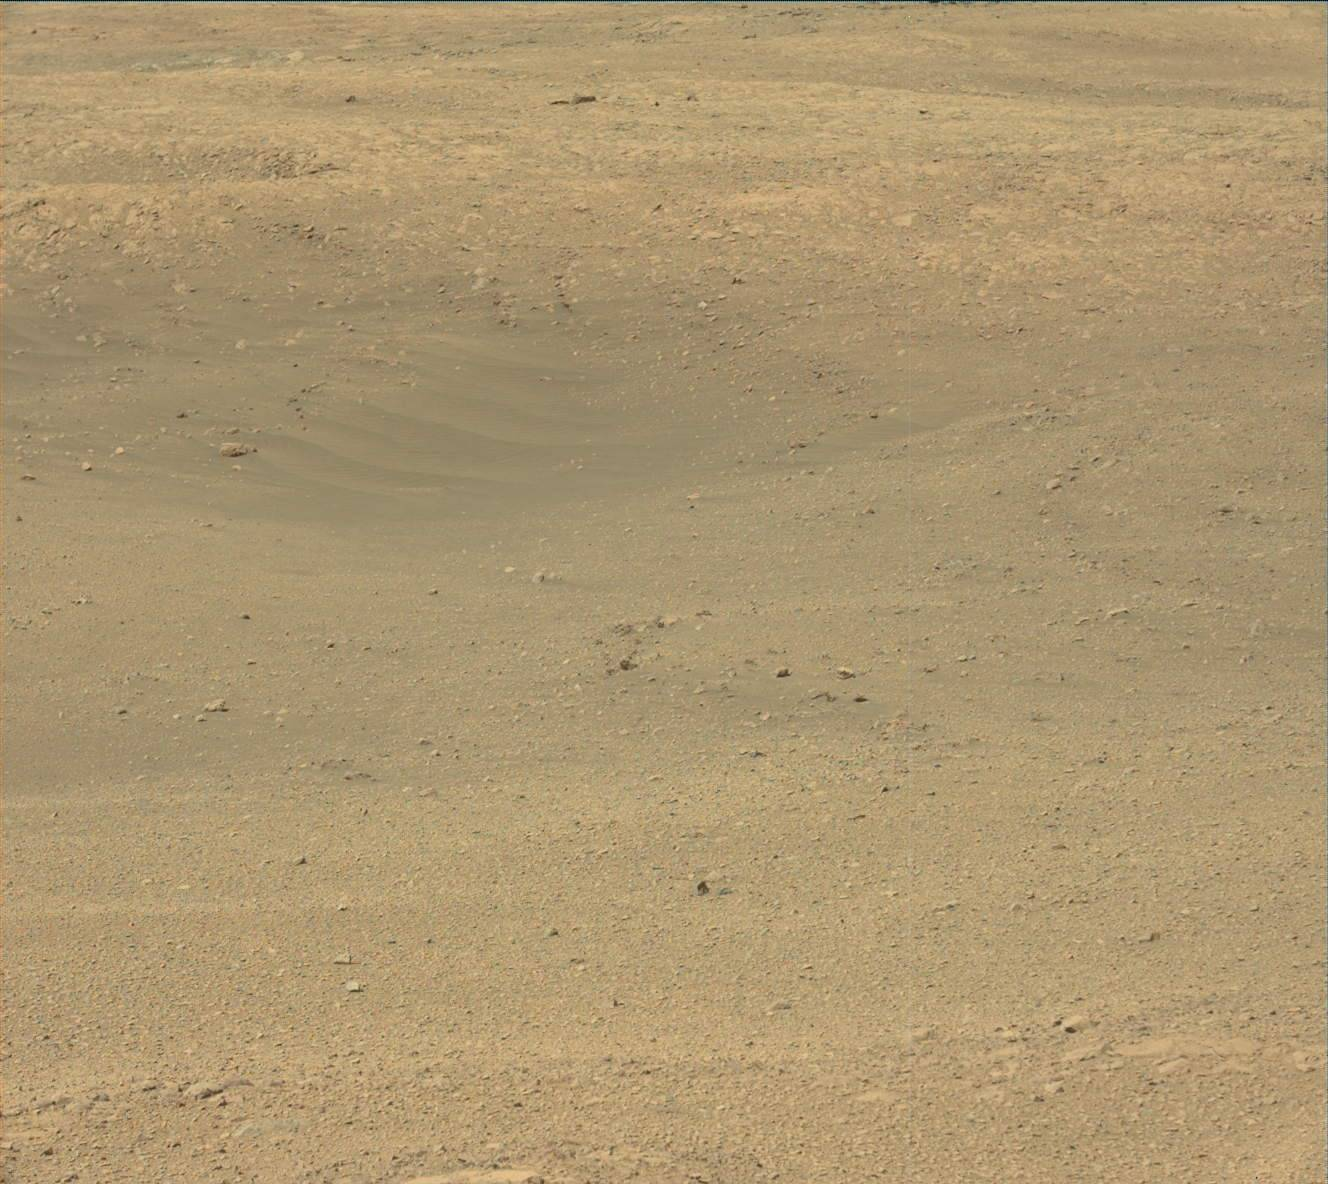 Nasa's Mars rover Curiosity acquired this image using its Mast Camera (Mastcam) on Sol 1894